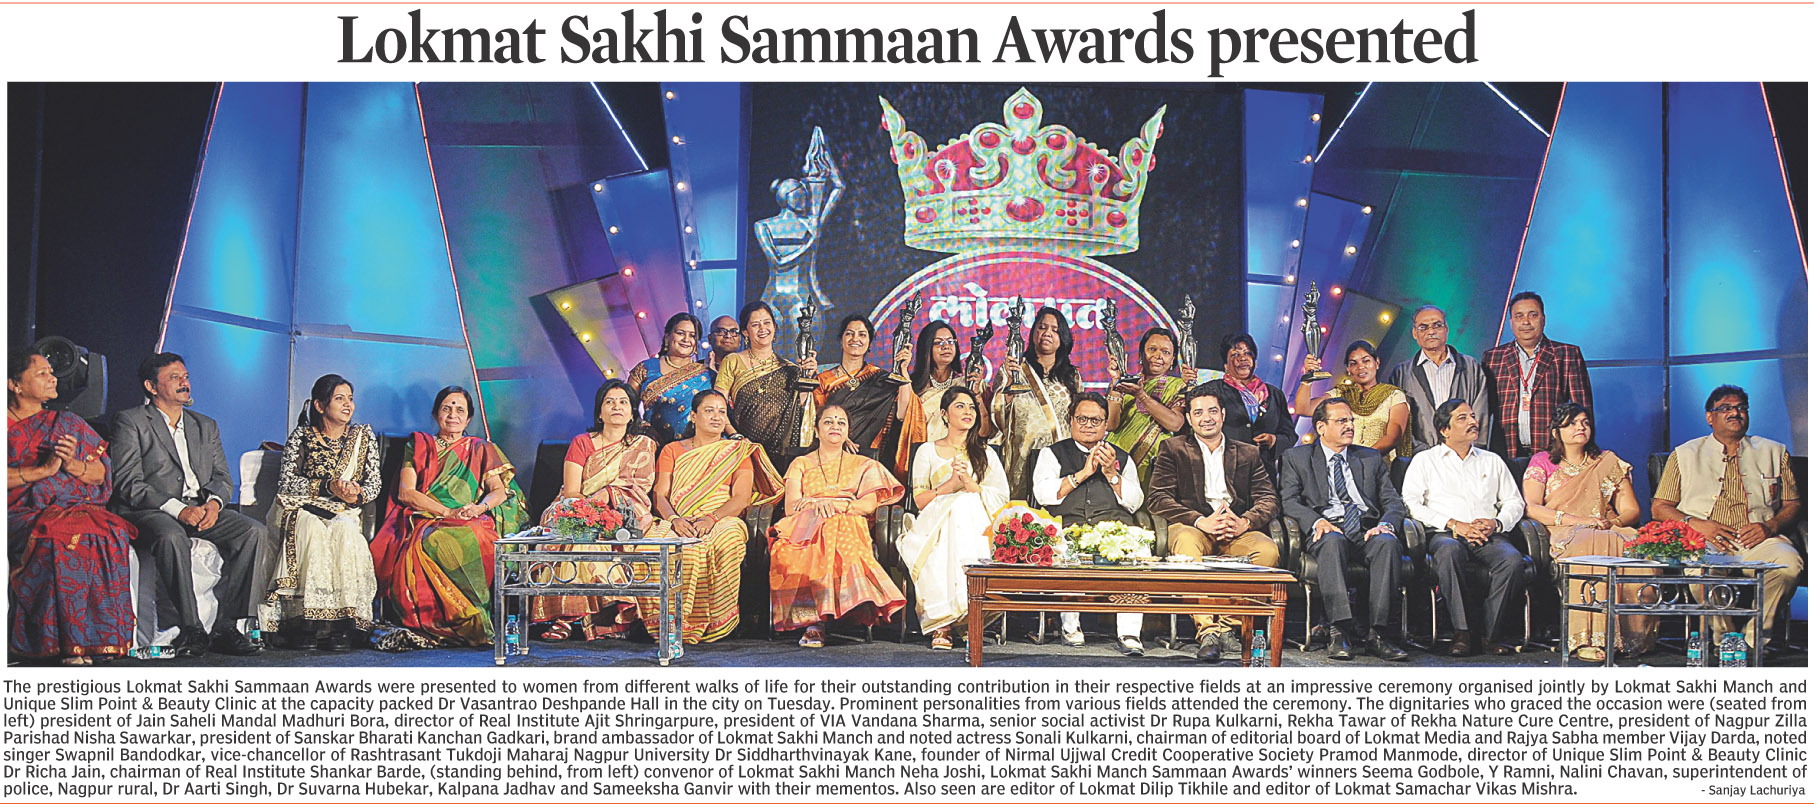 Lokmat Sakhi Samman Awards presented